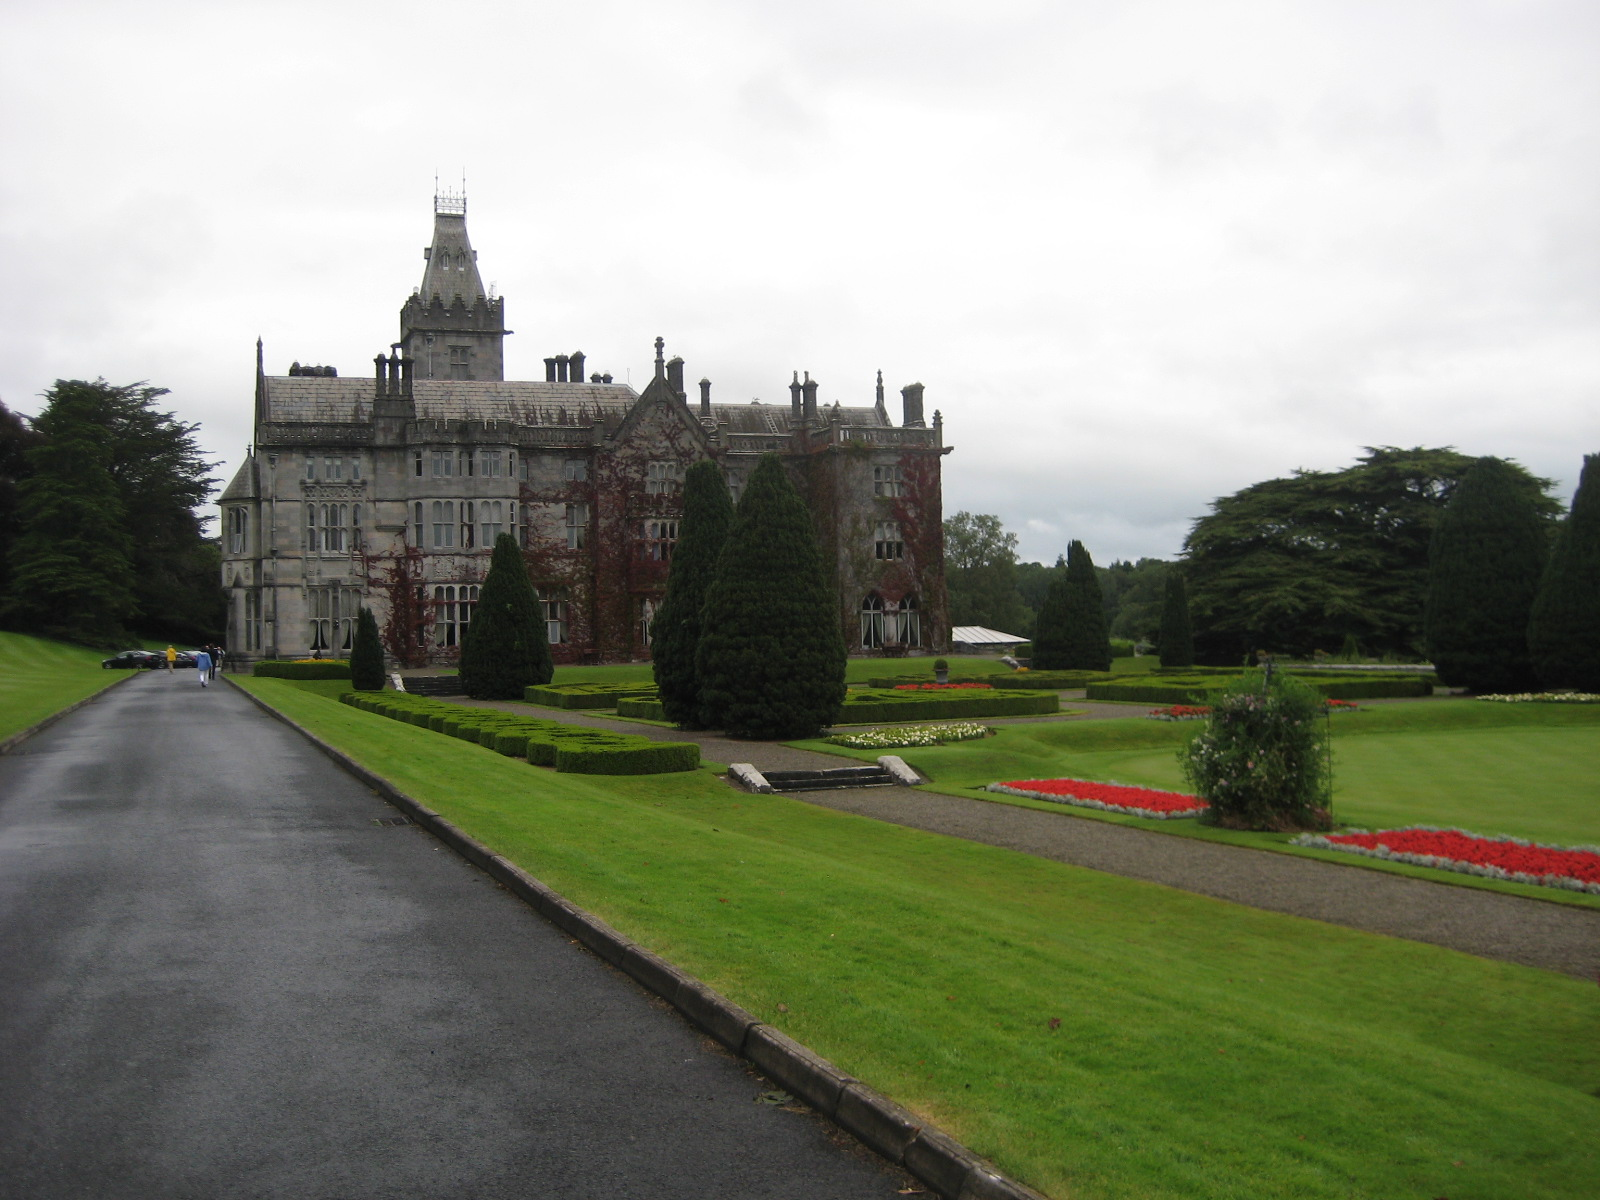 adare manor county limerick ireland wallpapers - Adare Manor County Limerick Ireland wallpaper